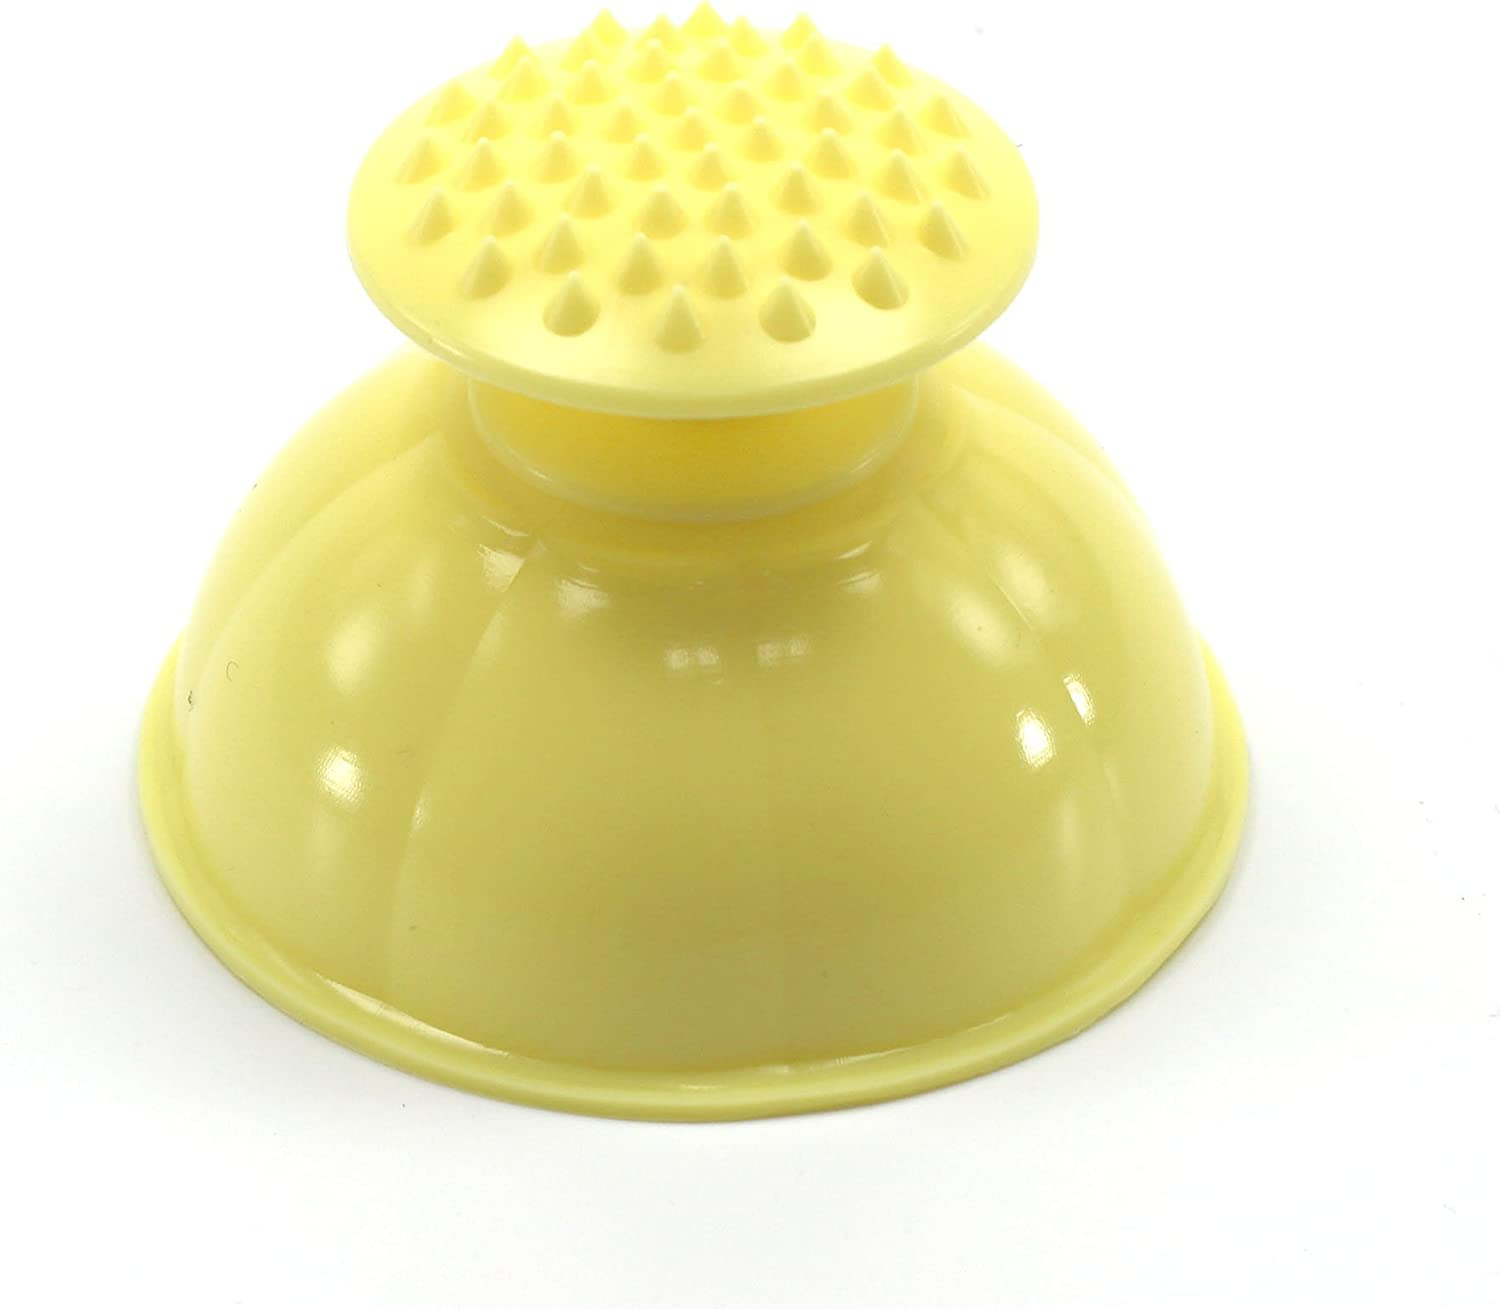 LENITH Silicone Mom Palm Cup for Baby Burping Helper Phlegm Sputum Spiky Massage Yellow